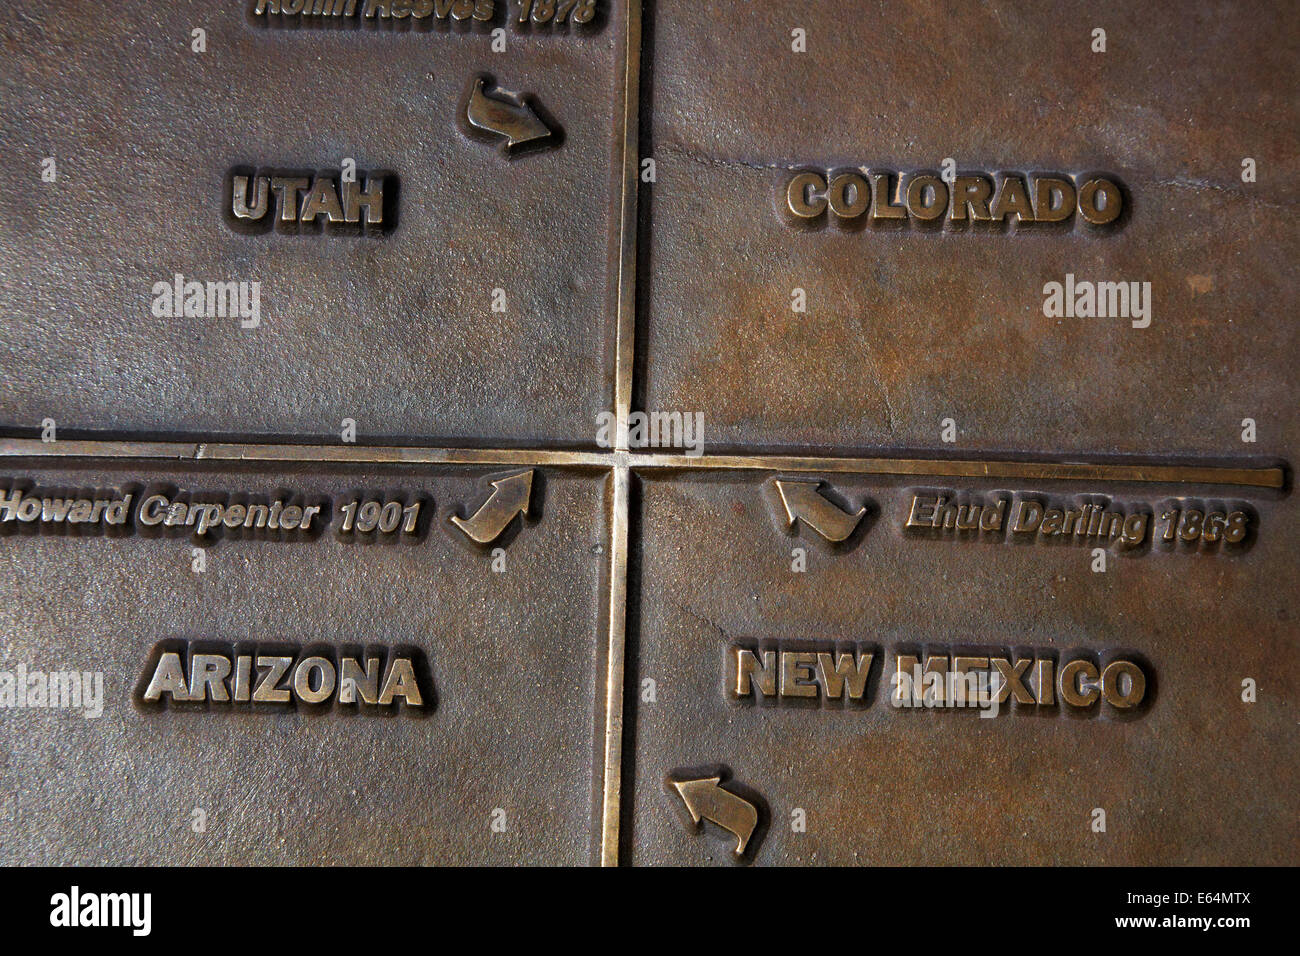 Four Corners Monument, at the state borders of Arizona, New Mexico, Colorado, and Utah, USA. - Stock Image